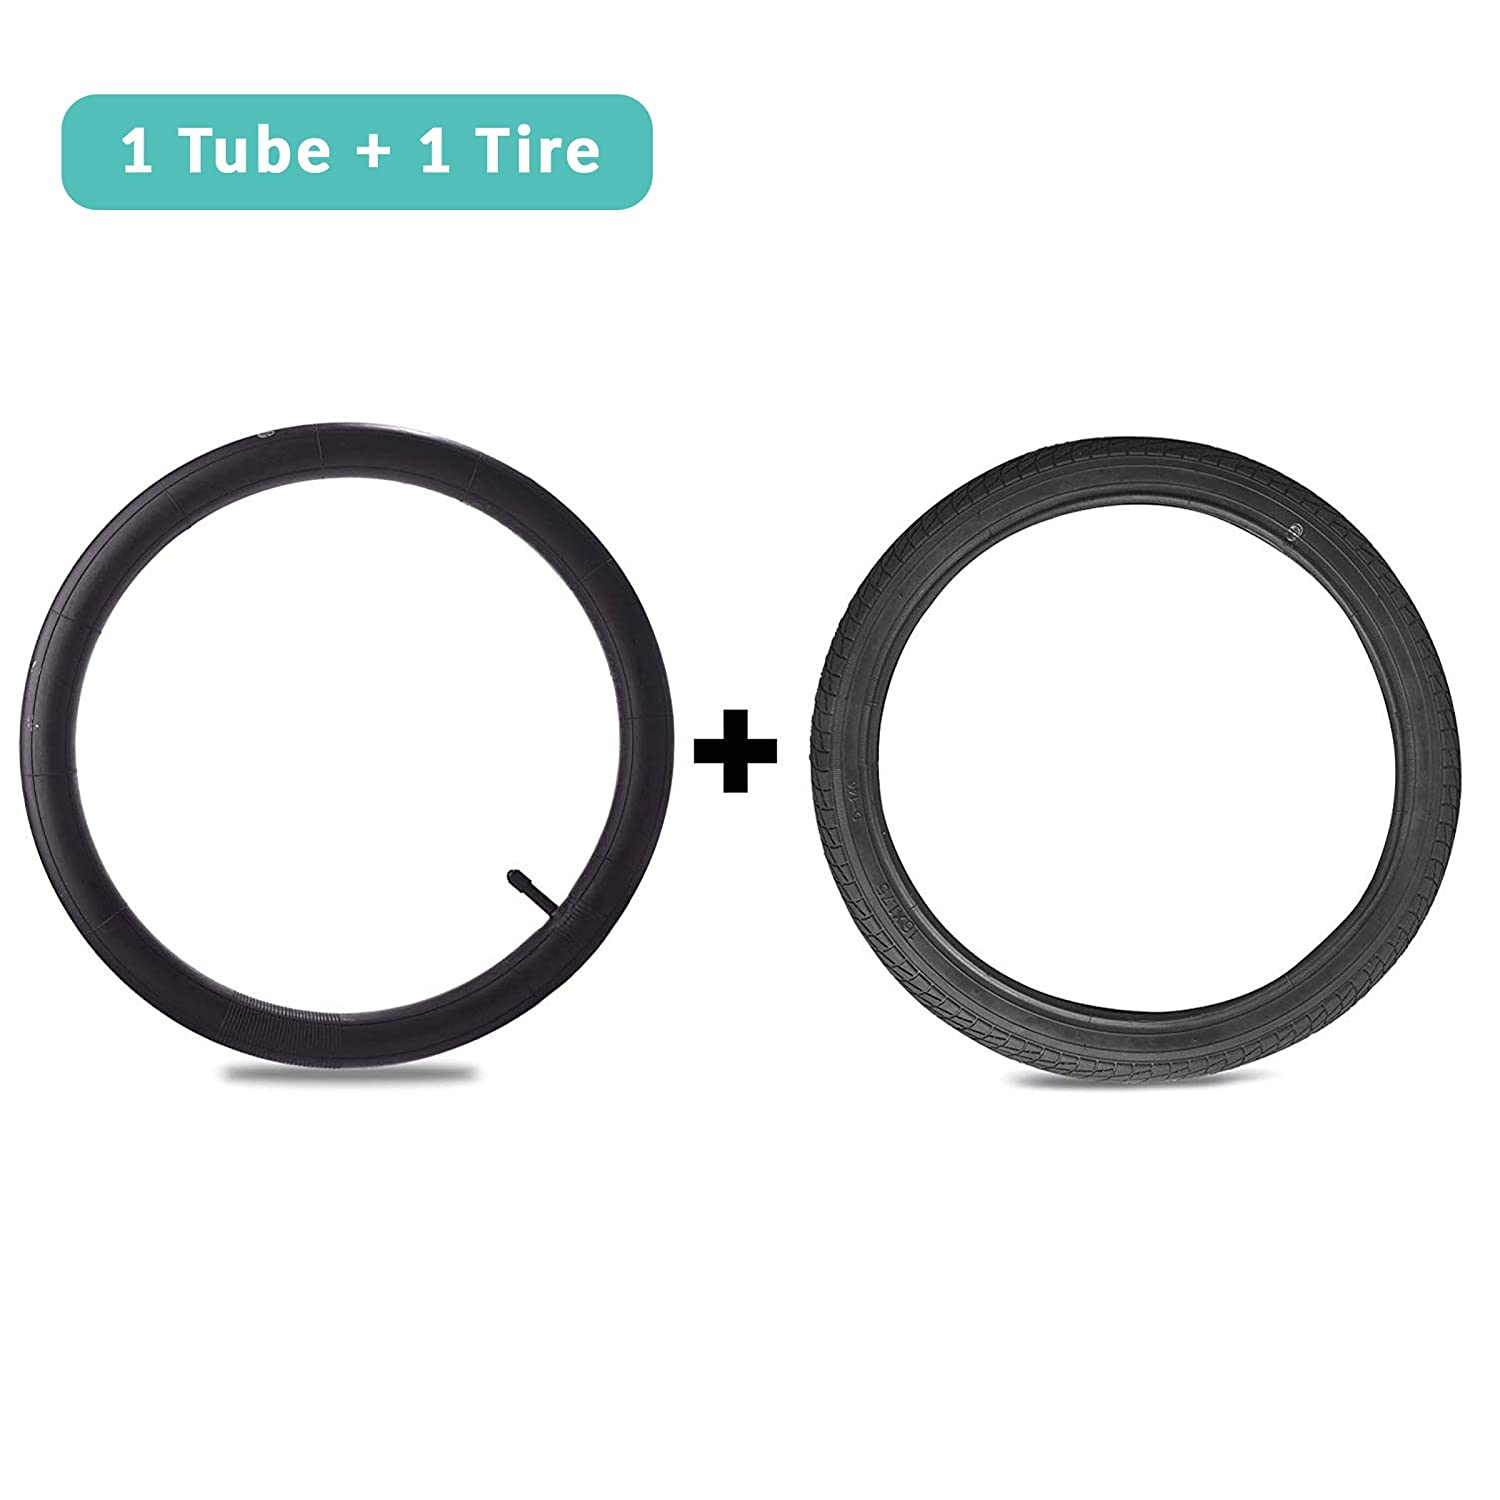 12 Front Wheel Replacement Tire and Tube for BoB Revolution SE//Pro//Flex Made from BPA//Latex Free Premium Quality Butyl Rubber